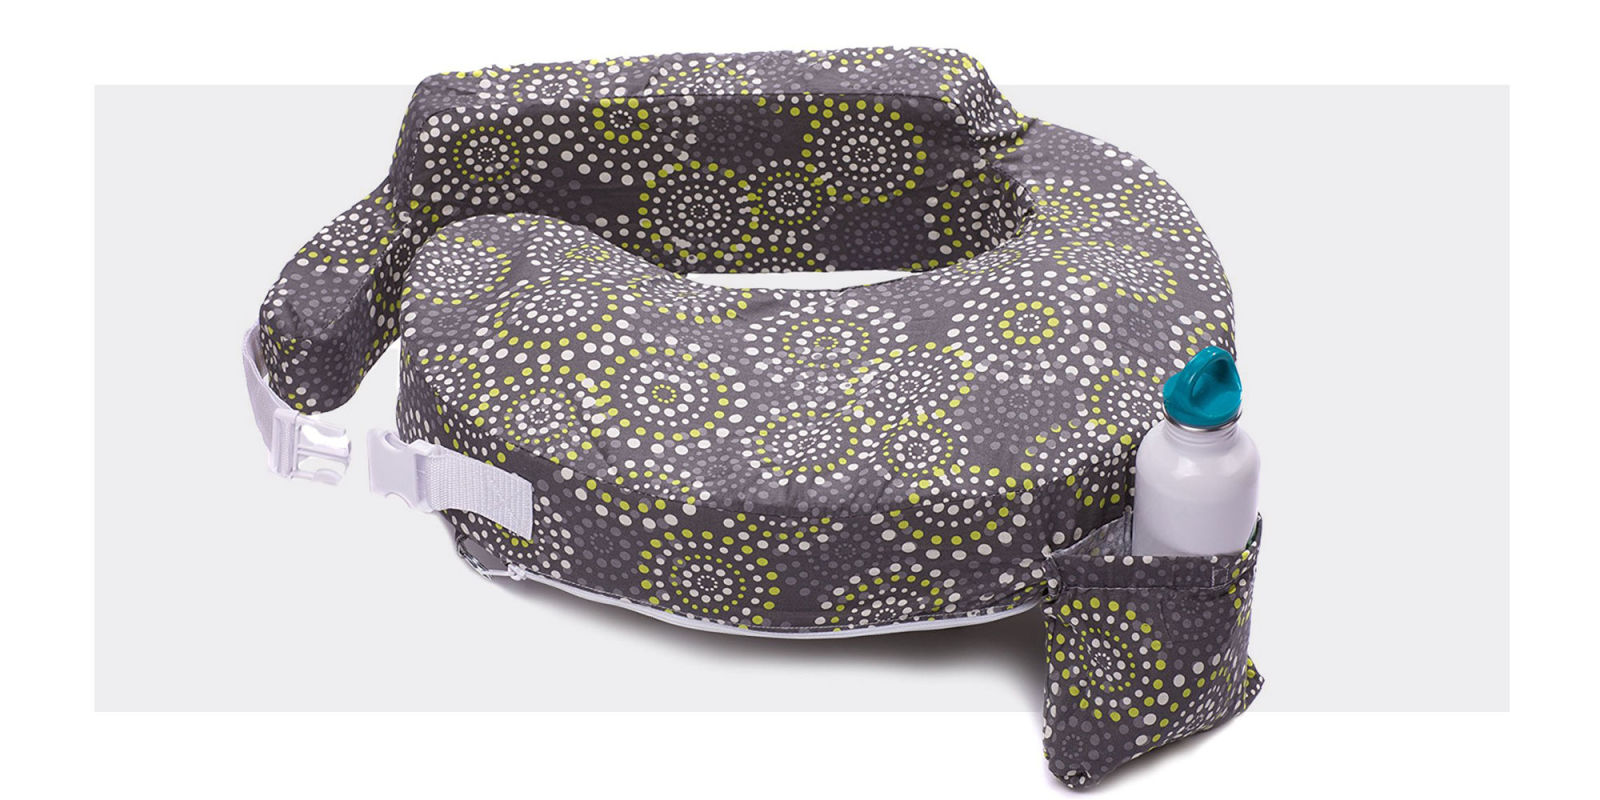 Baby bed heartbeat - Baby Products For 2017